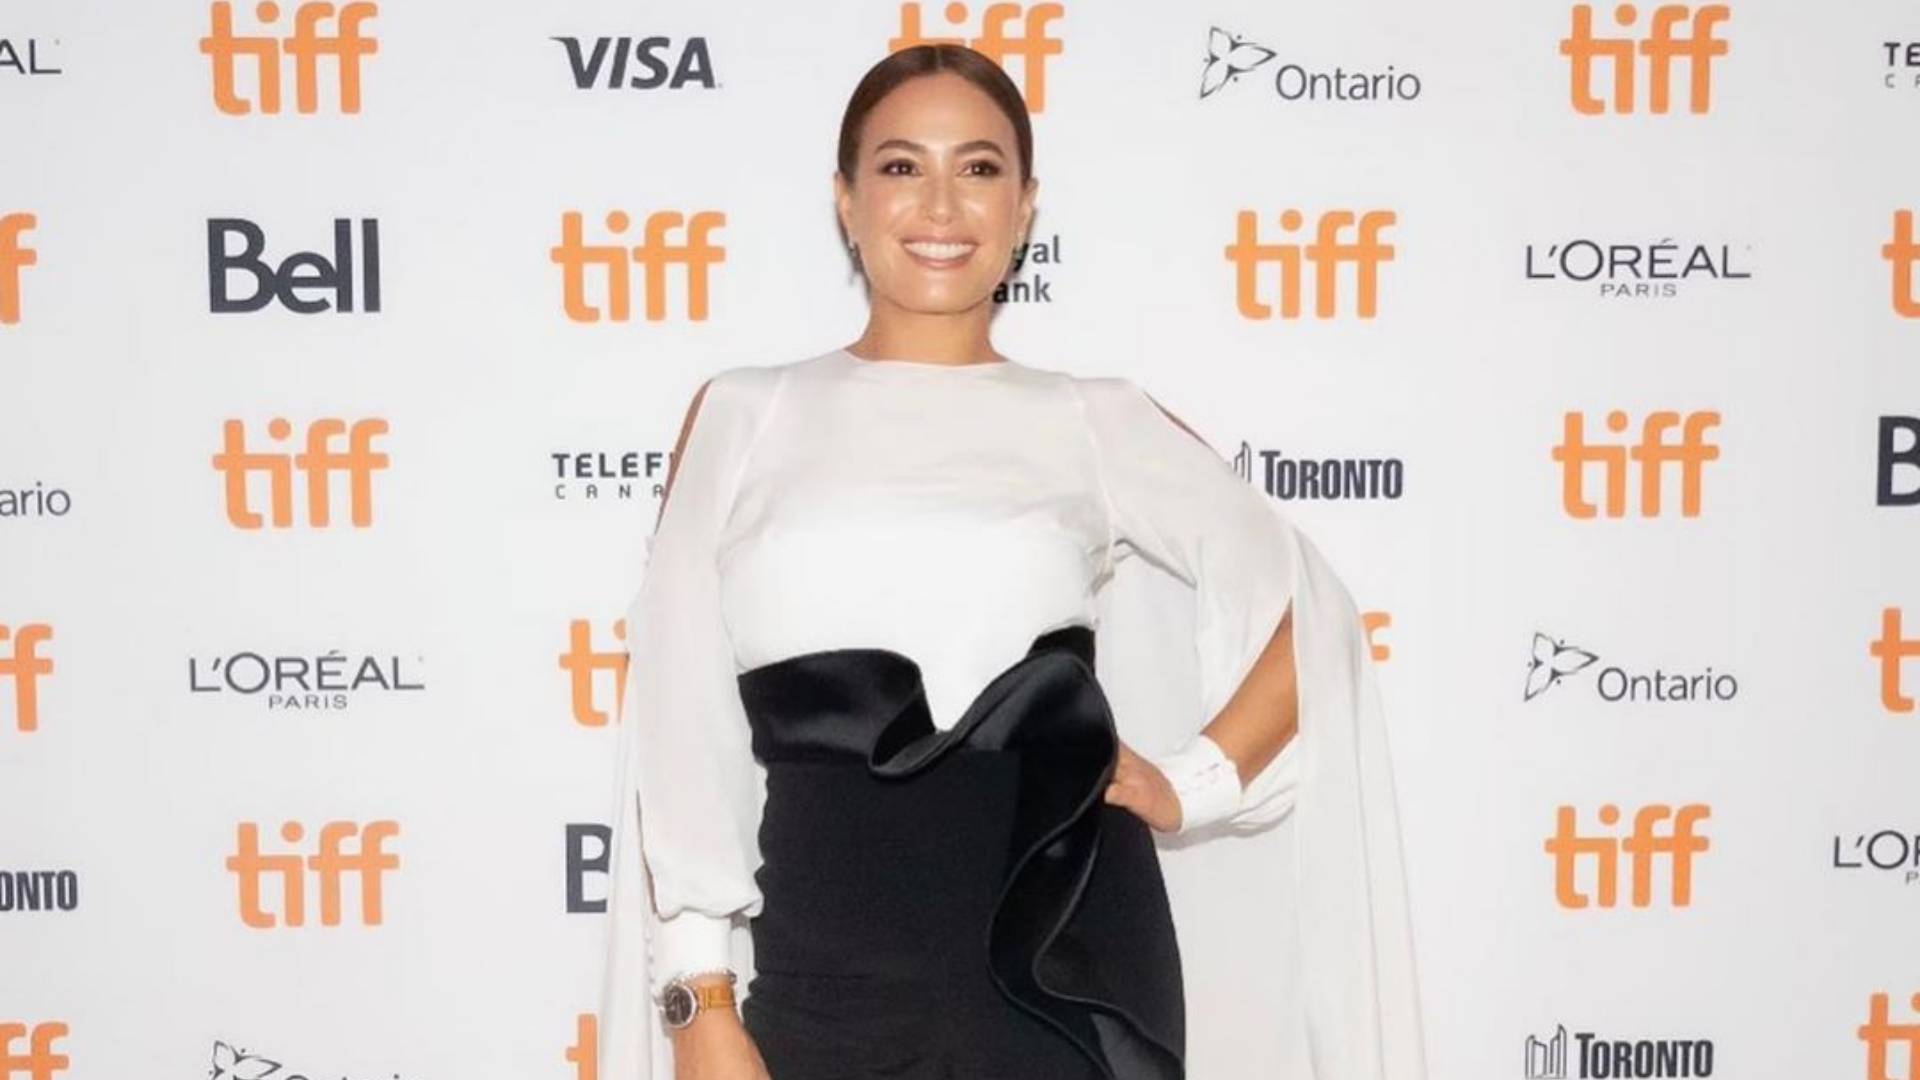 Hend Sabry Looks Effortlessly Chic Sporting This Lebanese Designer At TIFF